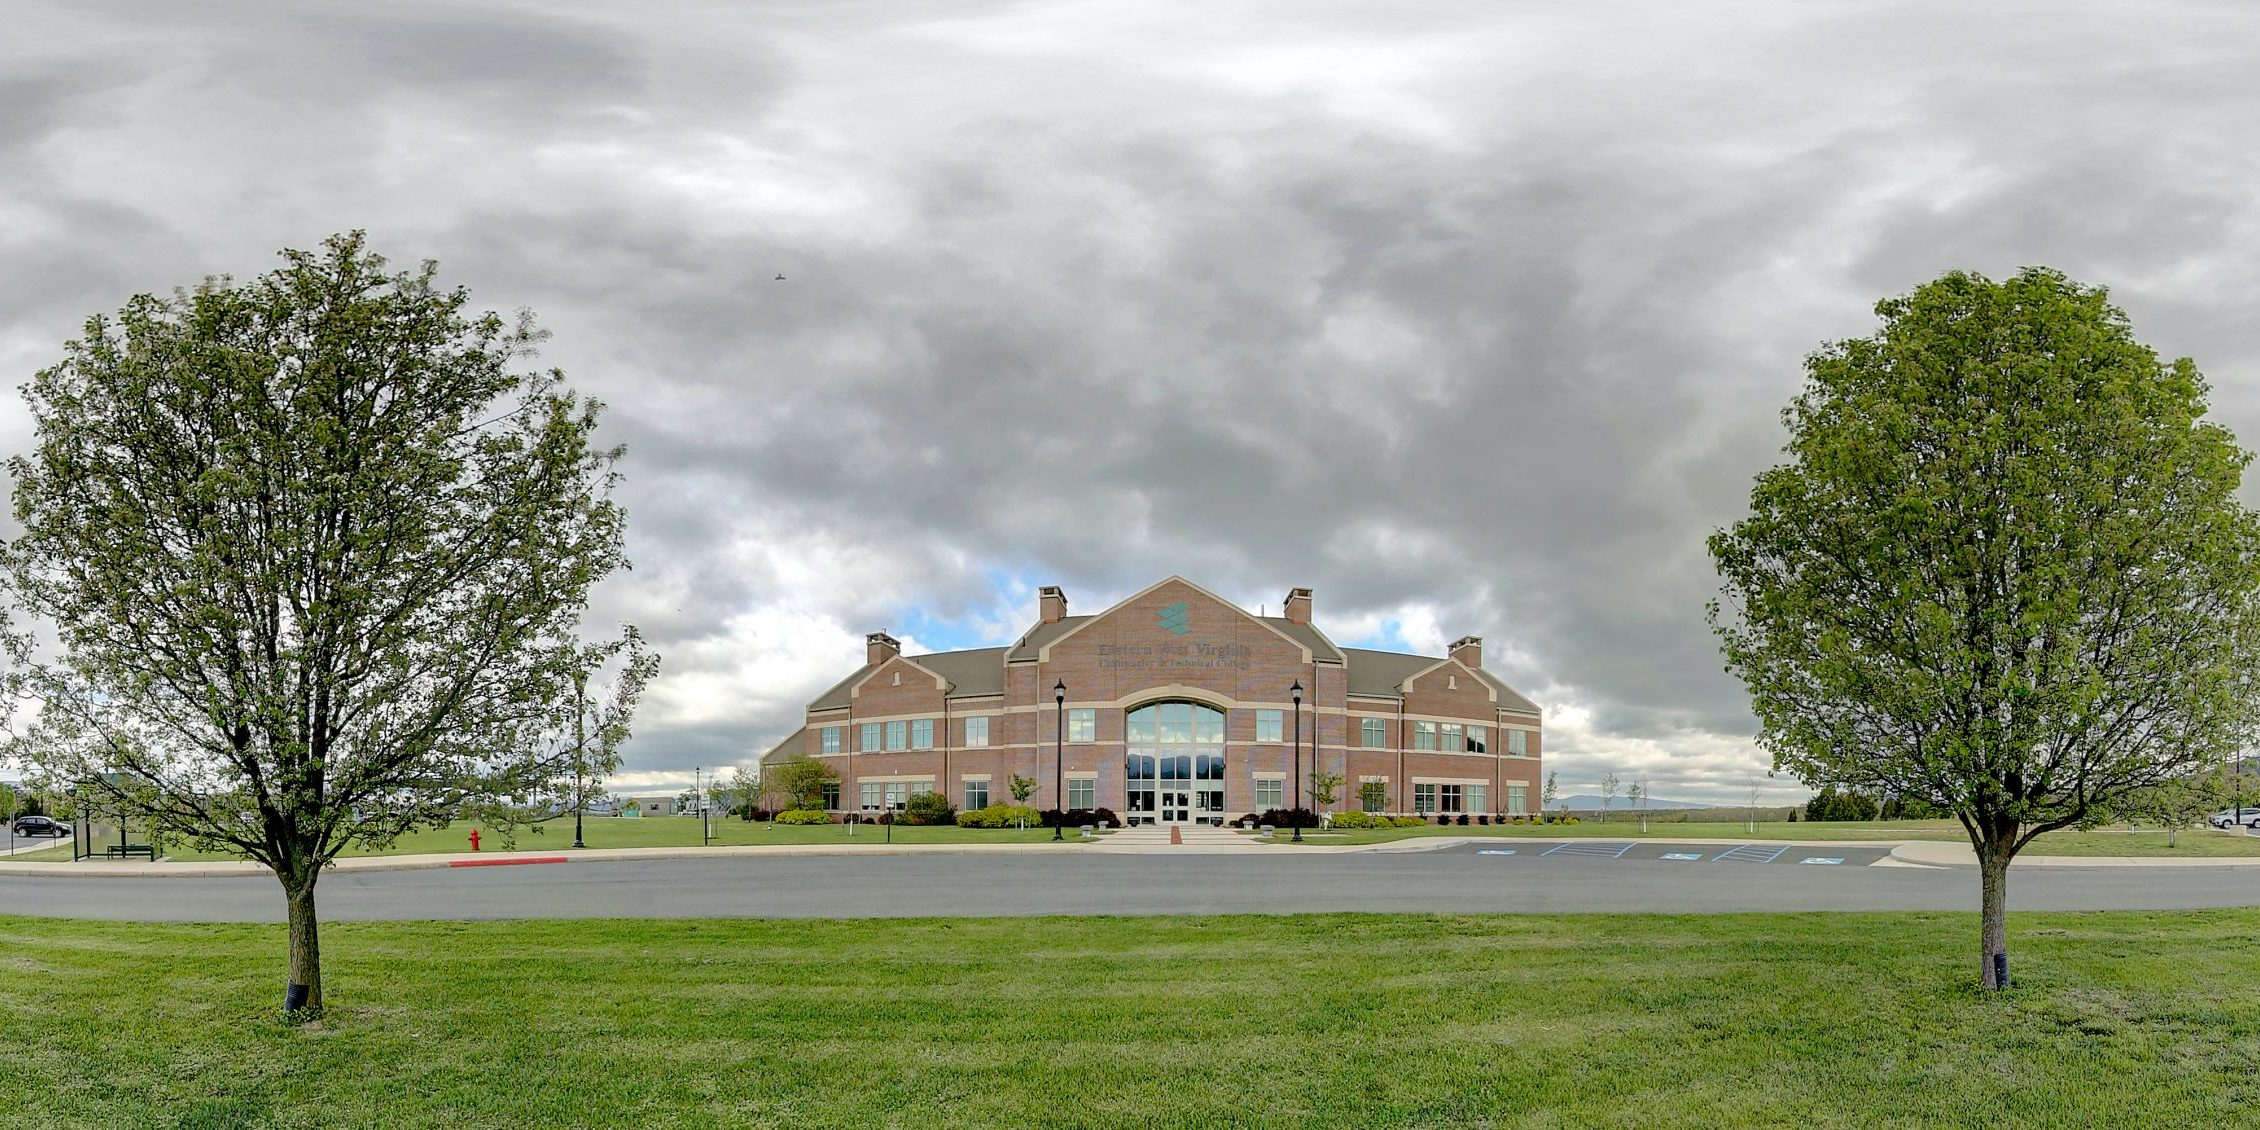 360 image of Eastern's campus building